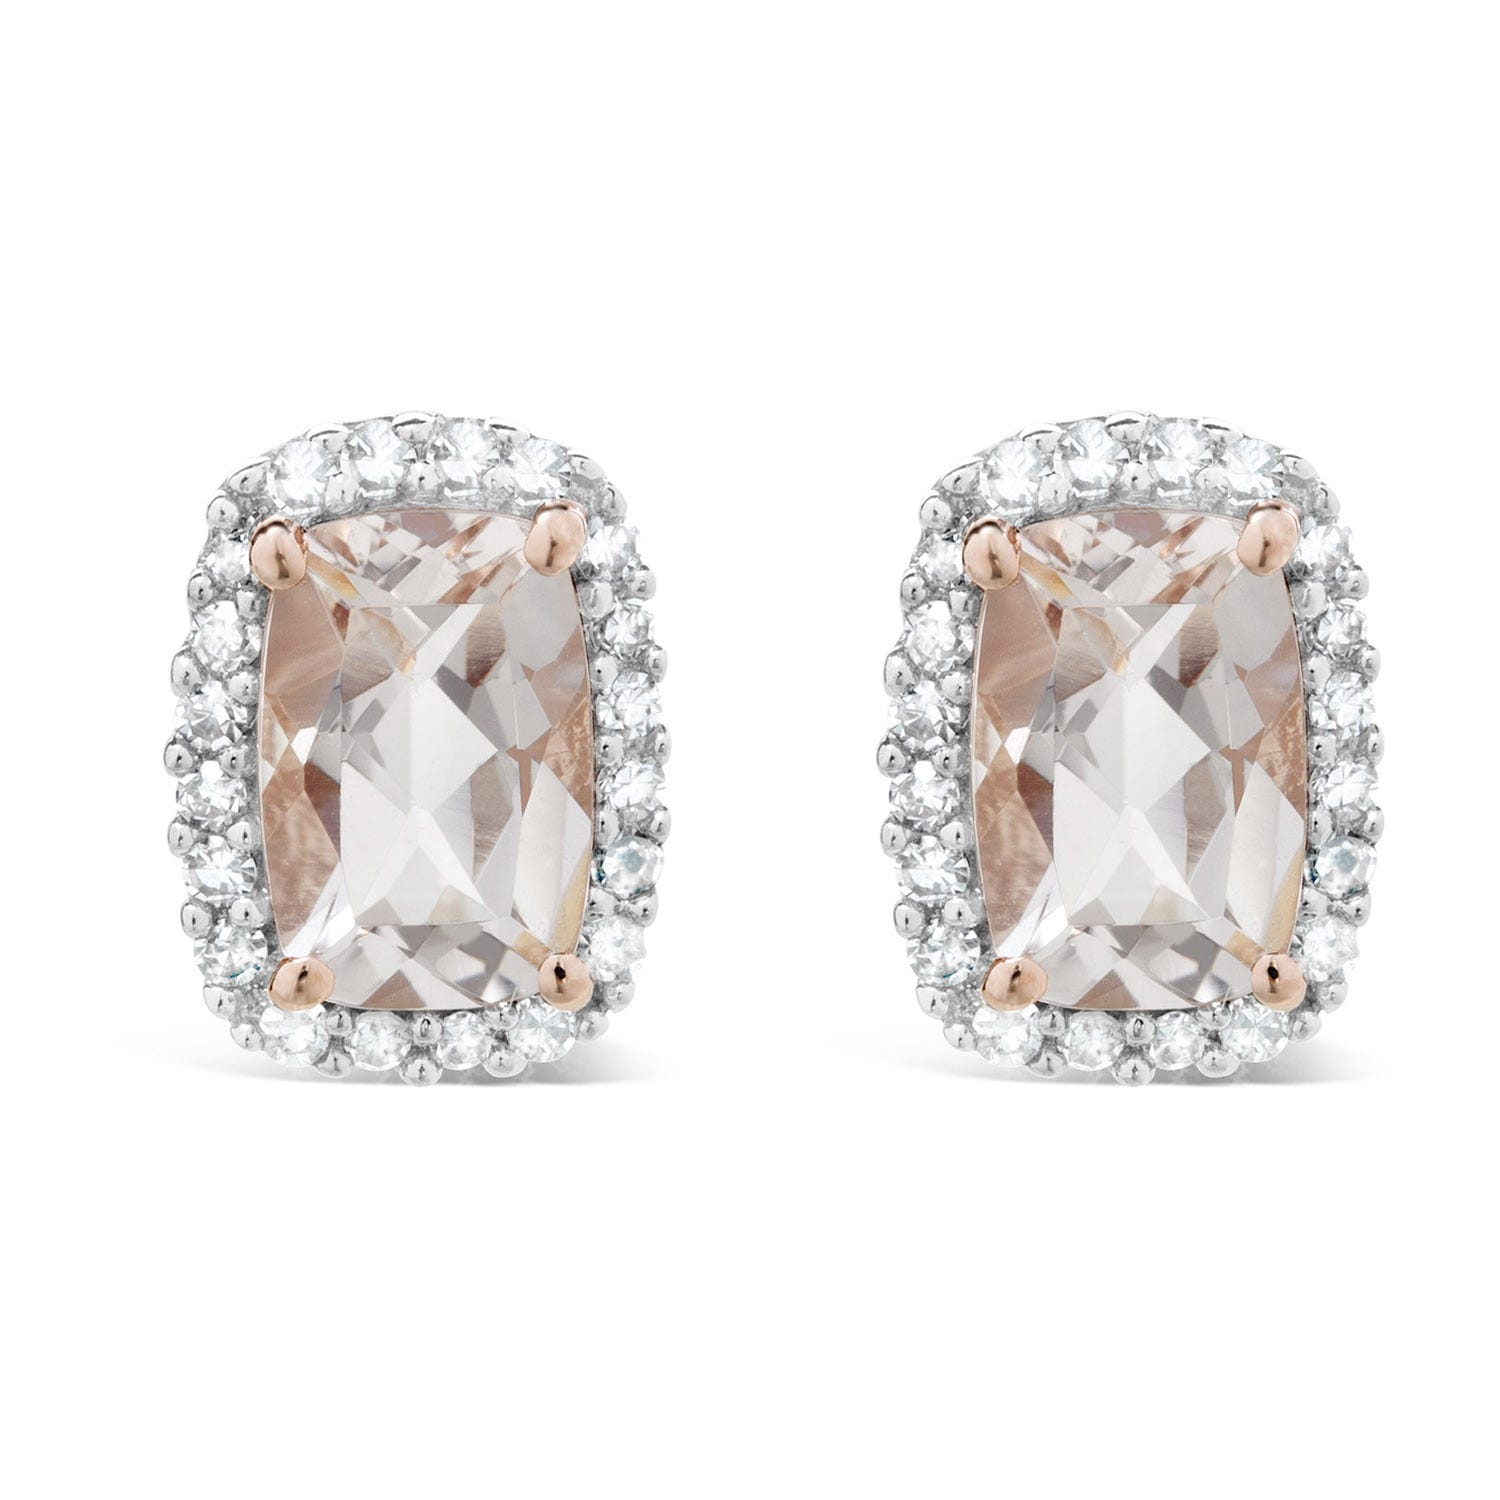 Ladies 9ct Rose Gold Rectangular Morganite 0.13 Carat Diamond Halo Stud Earrings